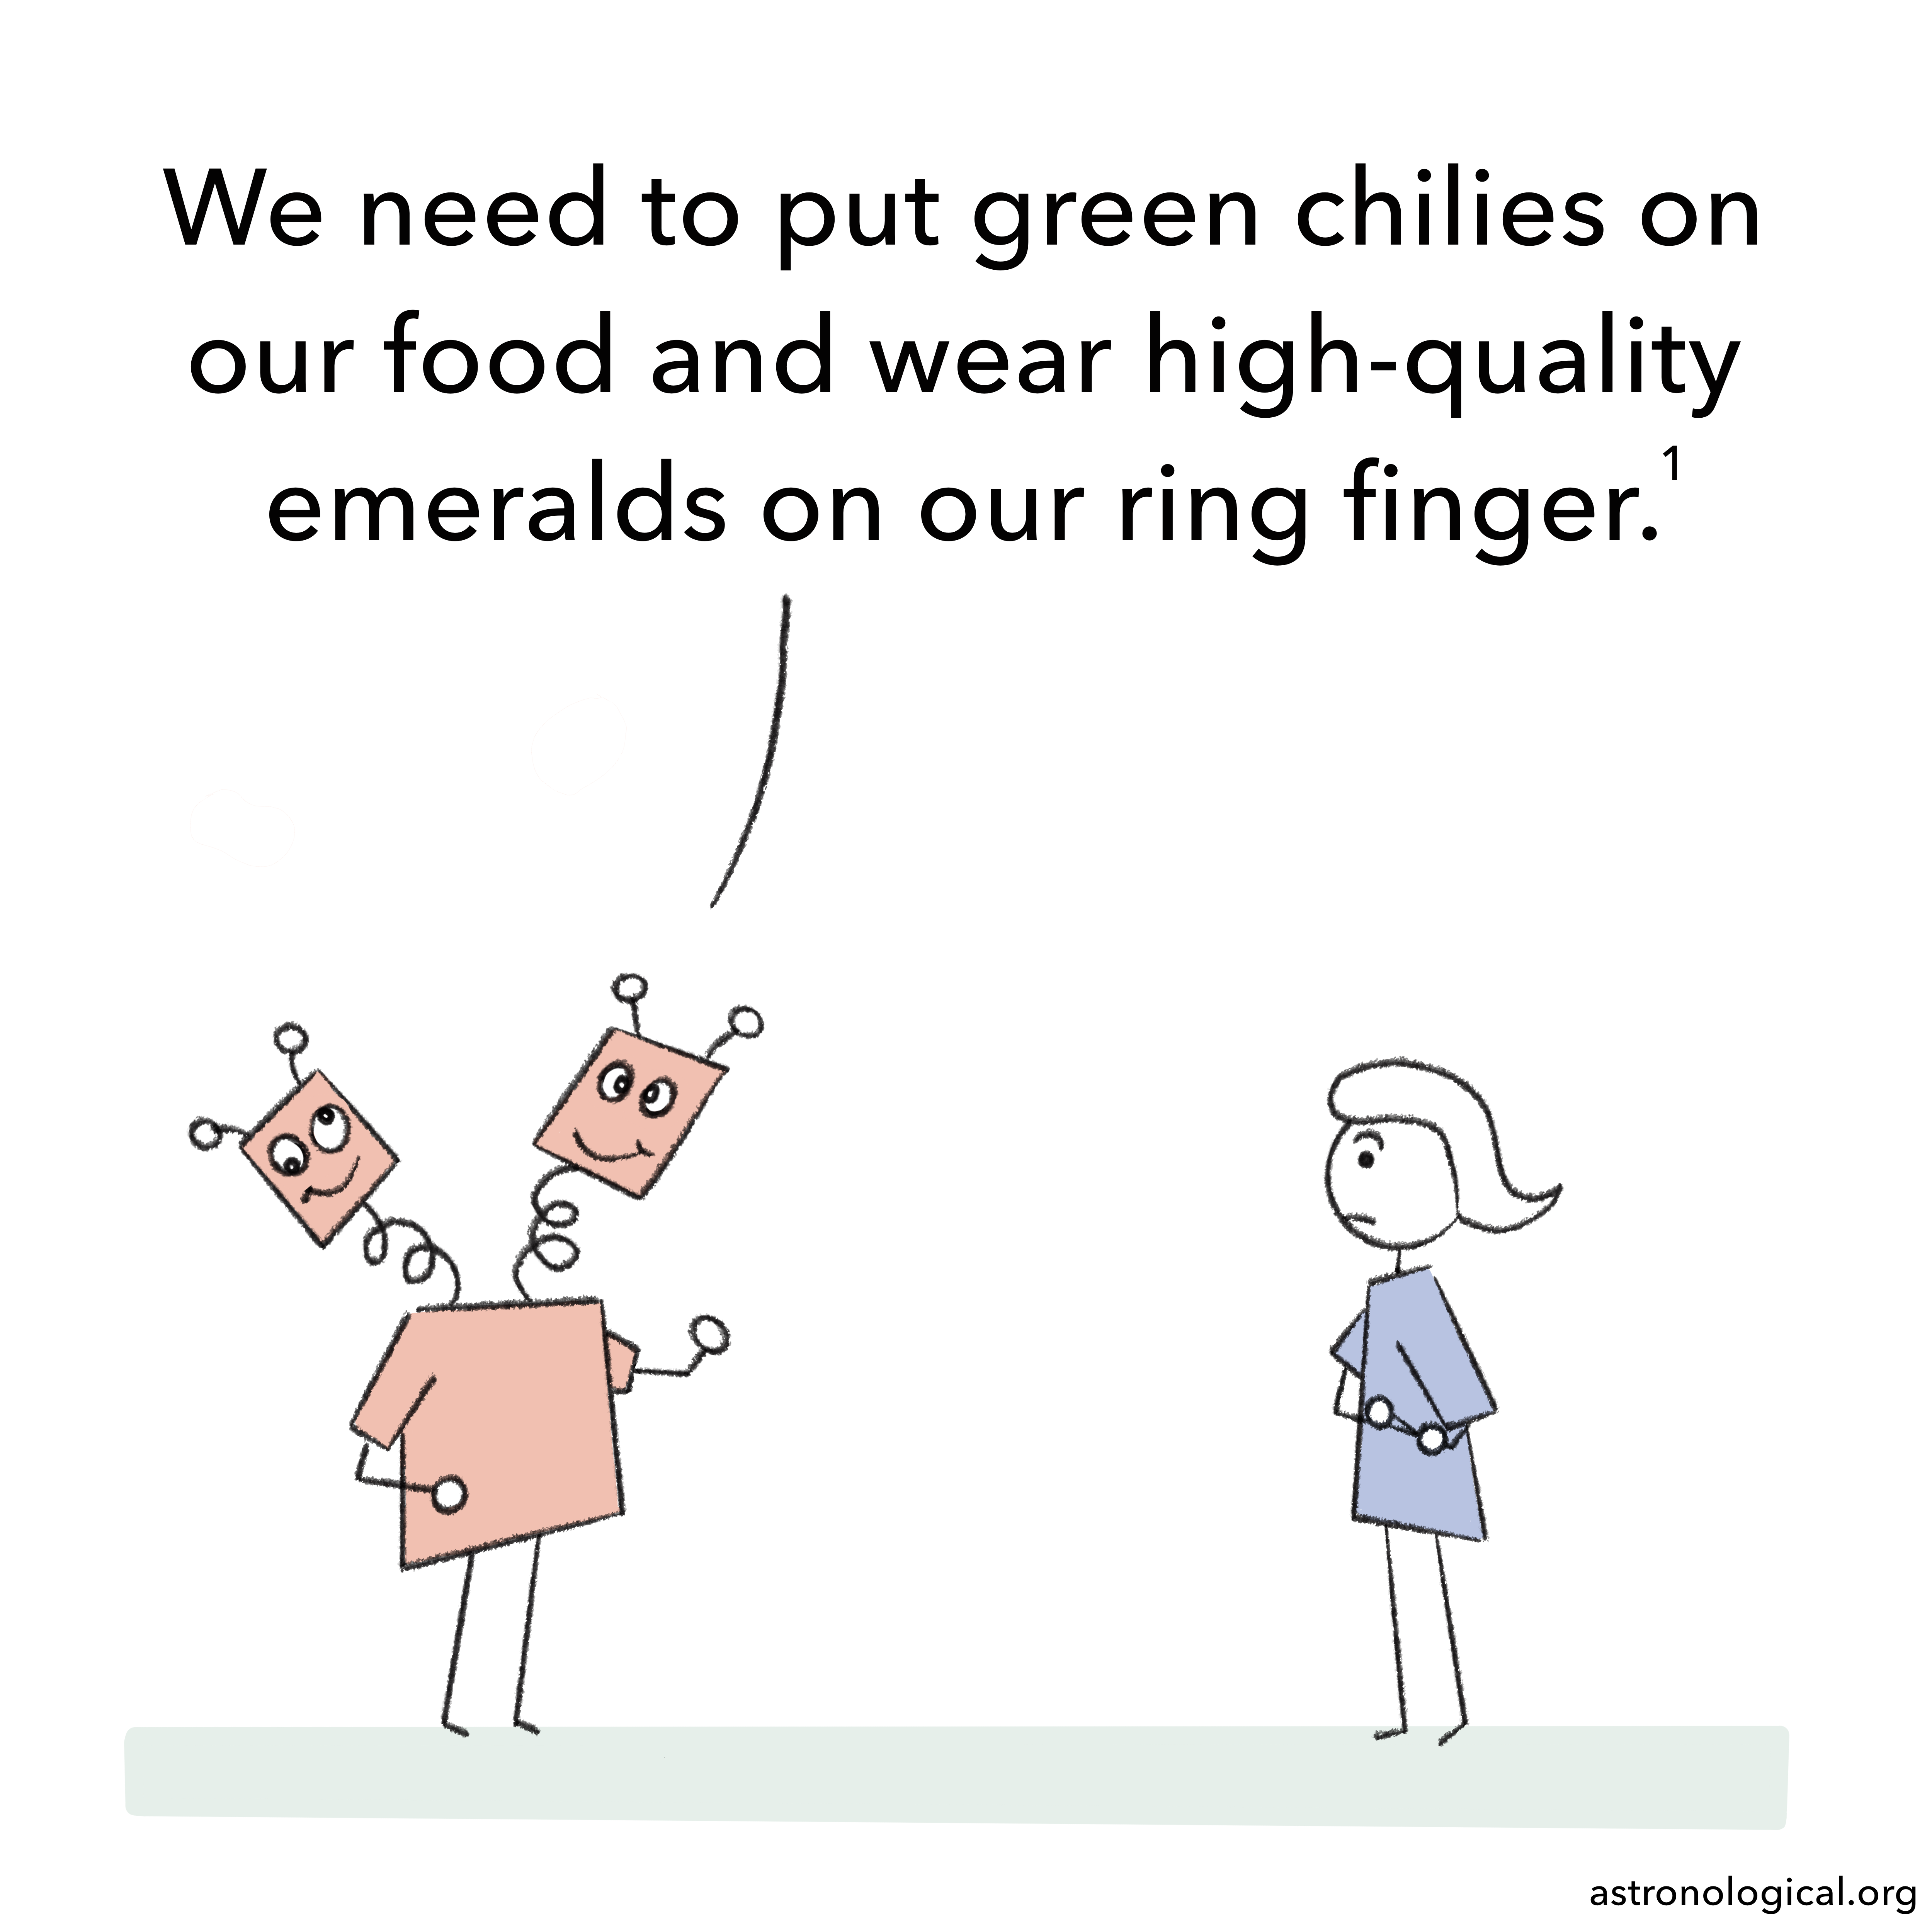 One twin says: We need to put green chilies on our food and wear high-quality emeralds on our ring finger. The girl still has her eyebrows raised.